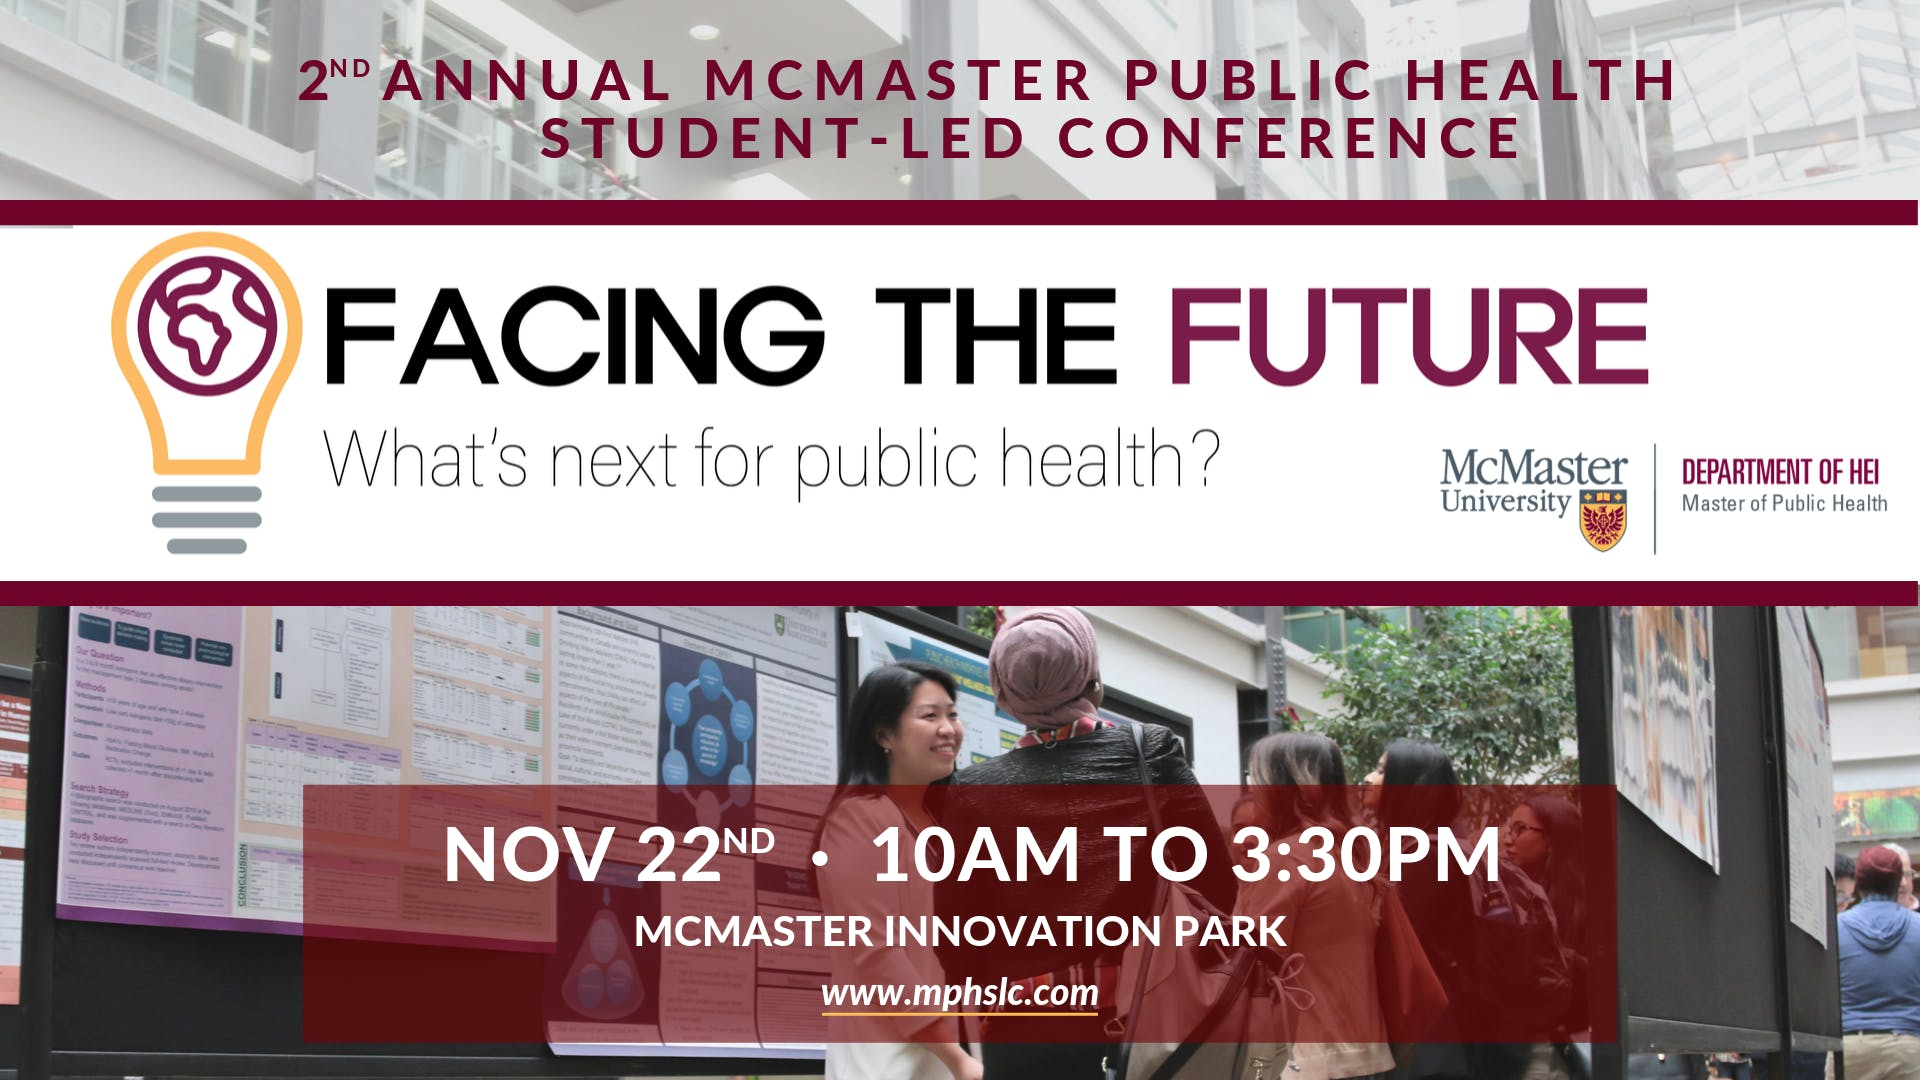 Facing the Future Whats Next for Public Health